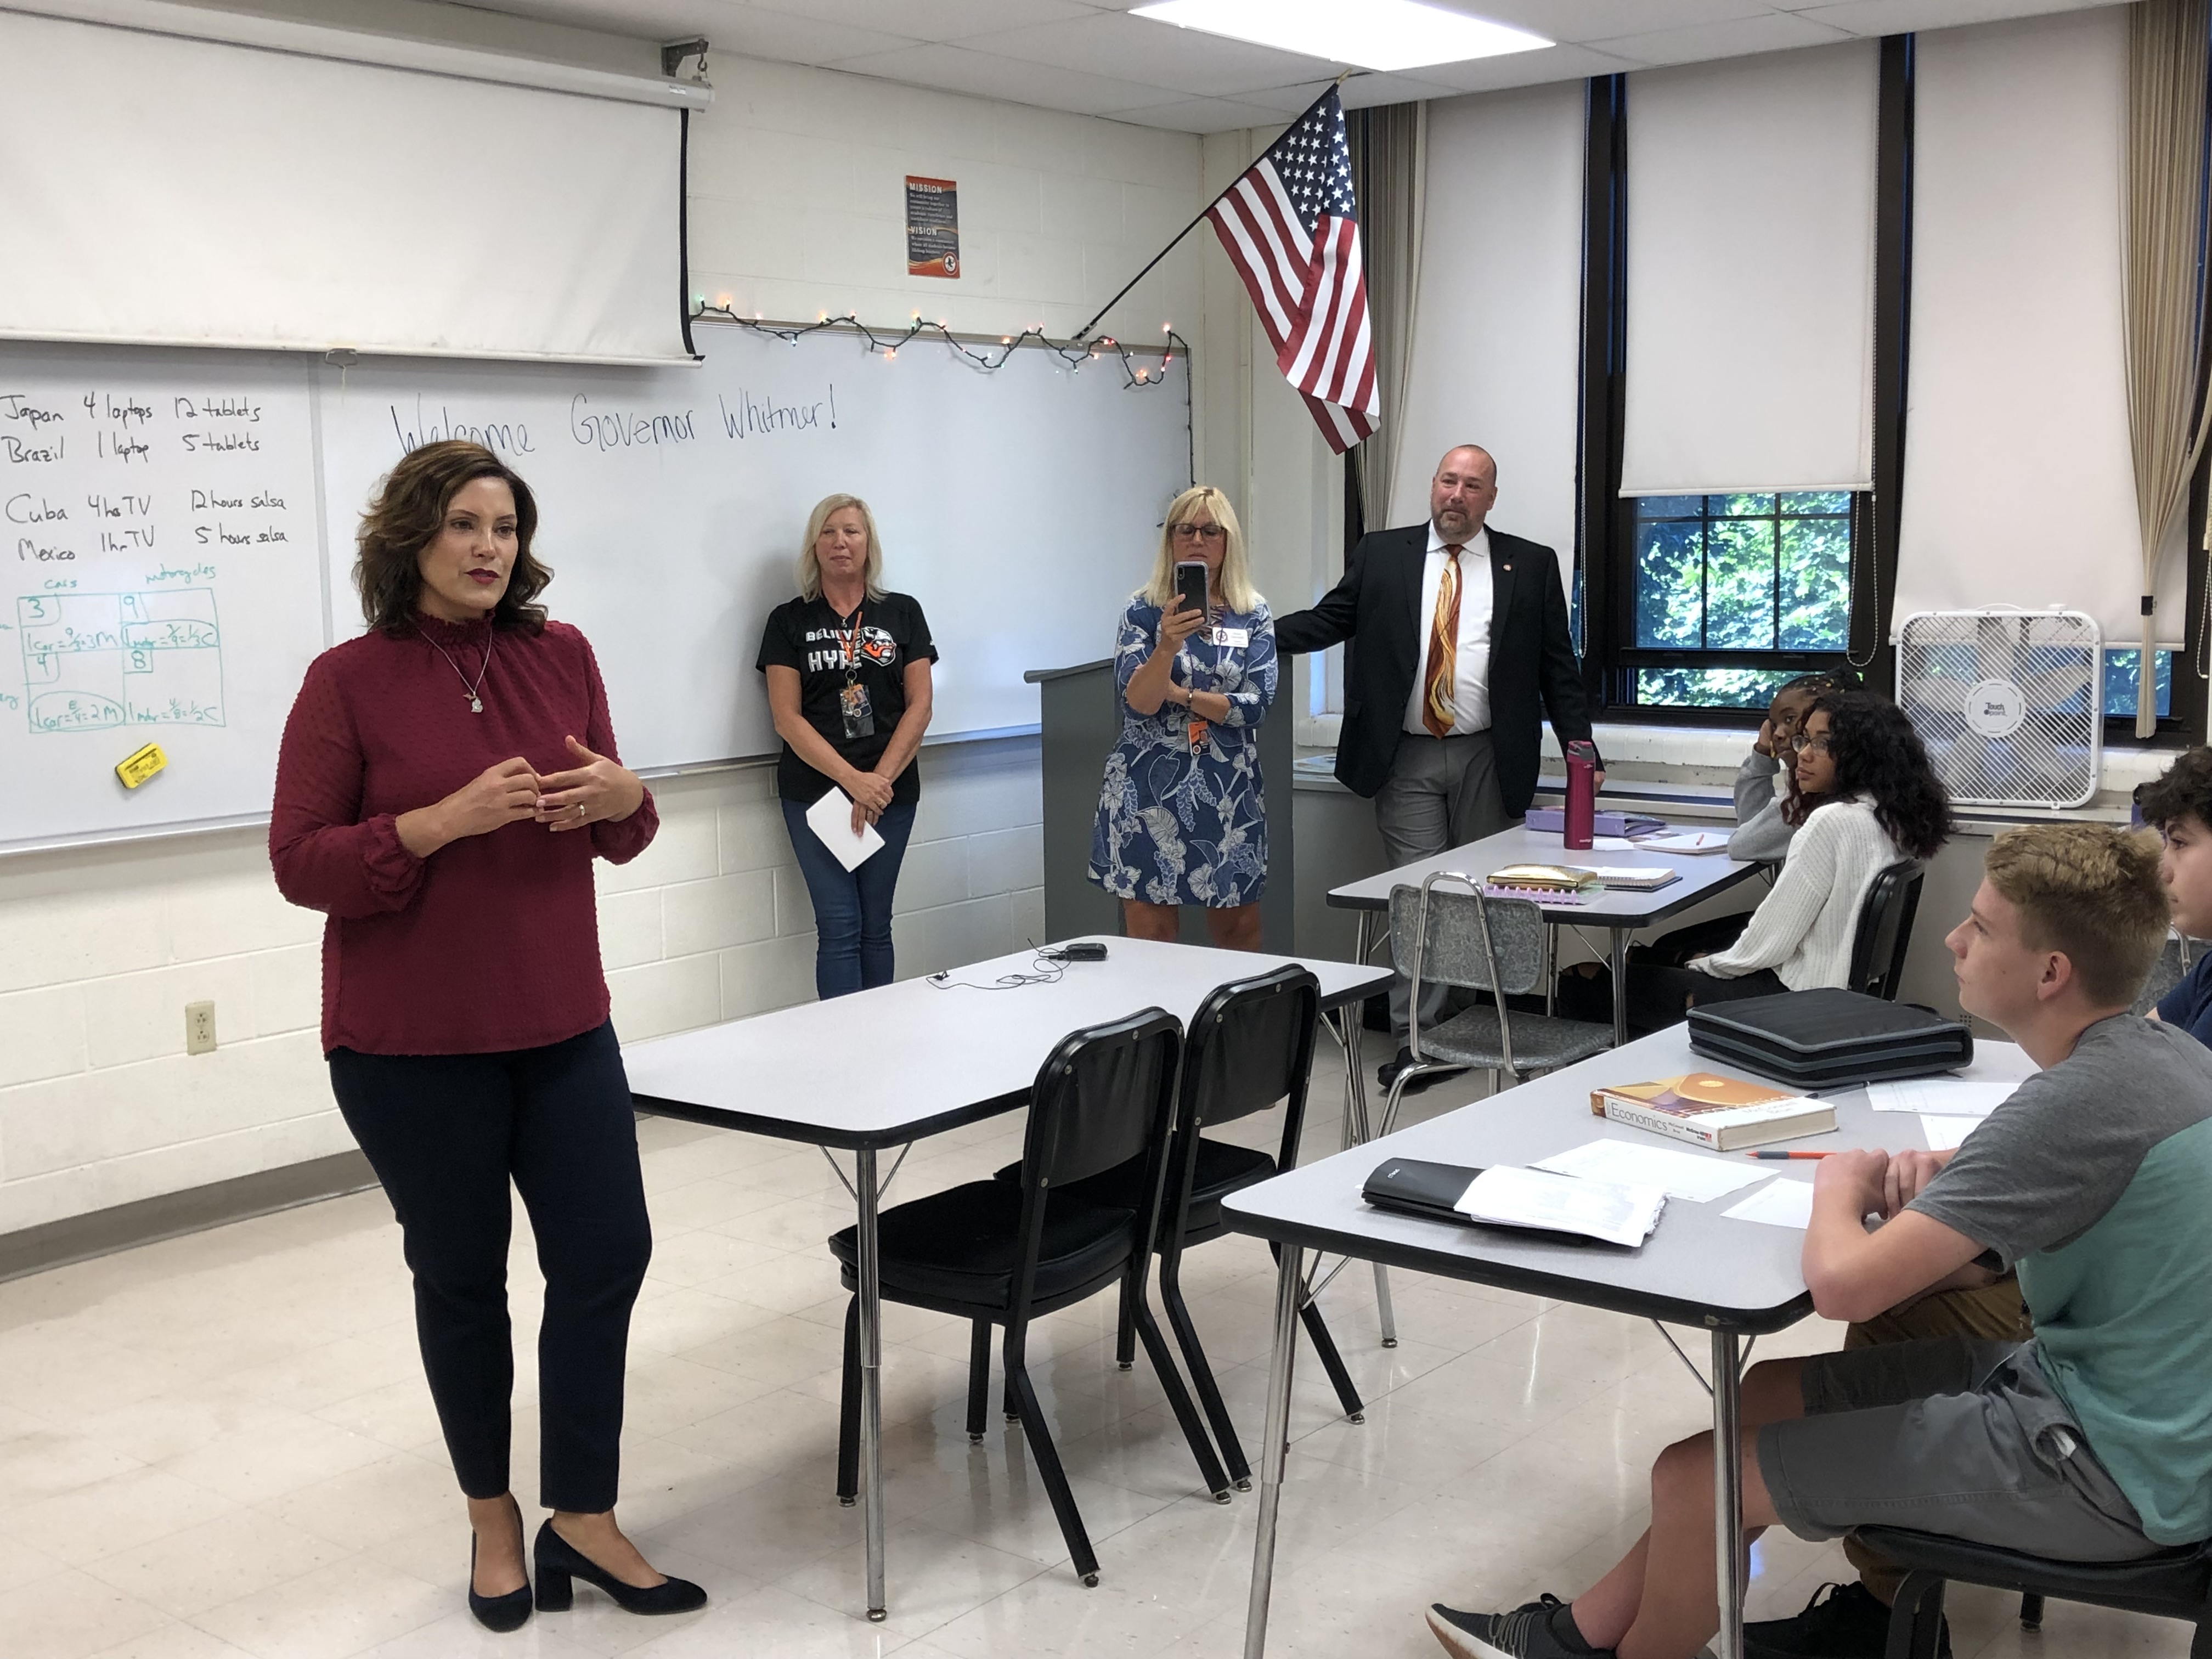 Whitmer Pushes for Real Budget Solutions at Jackson School Visit